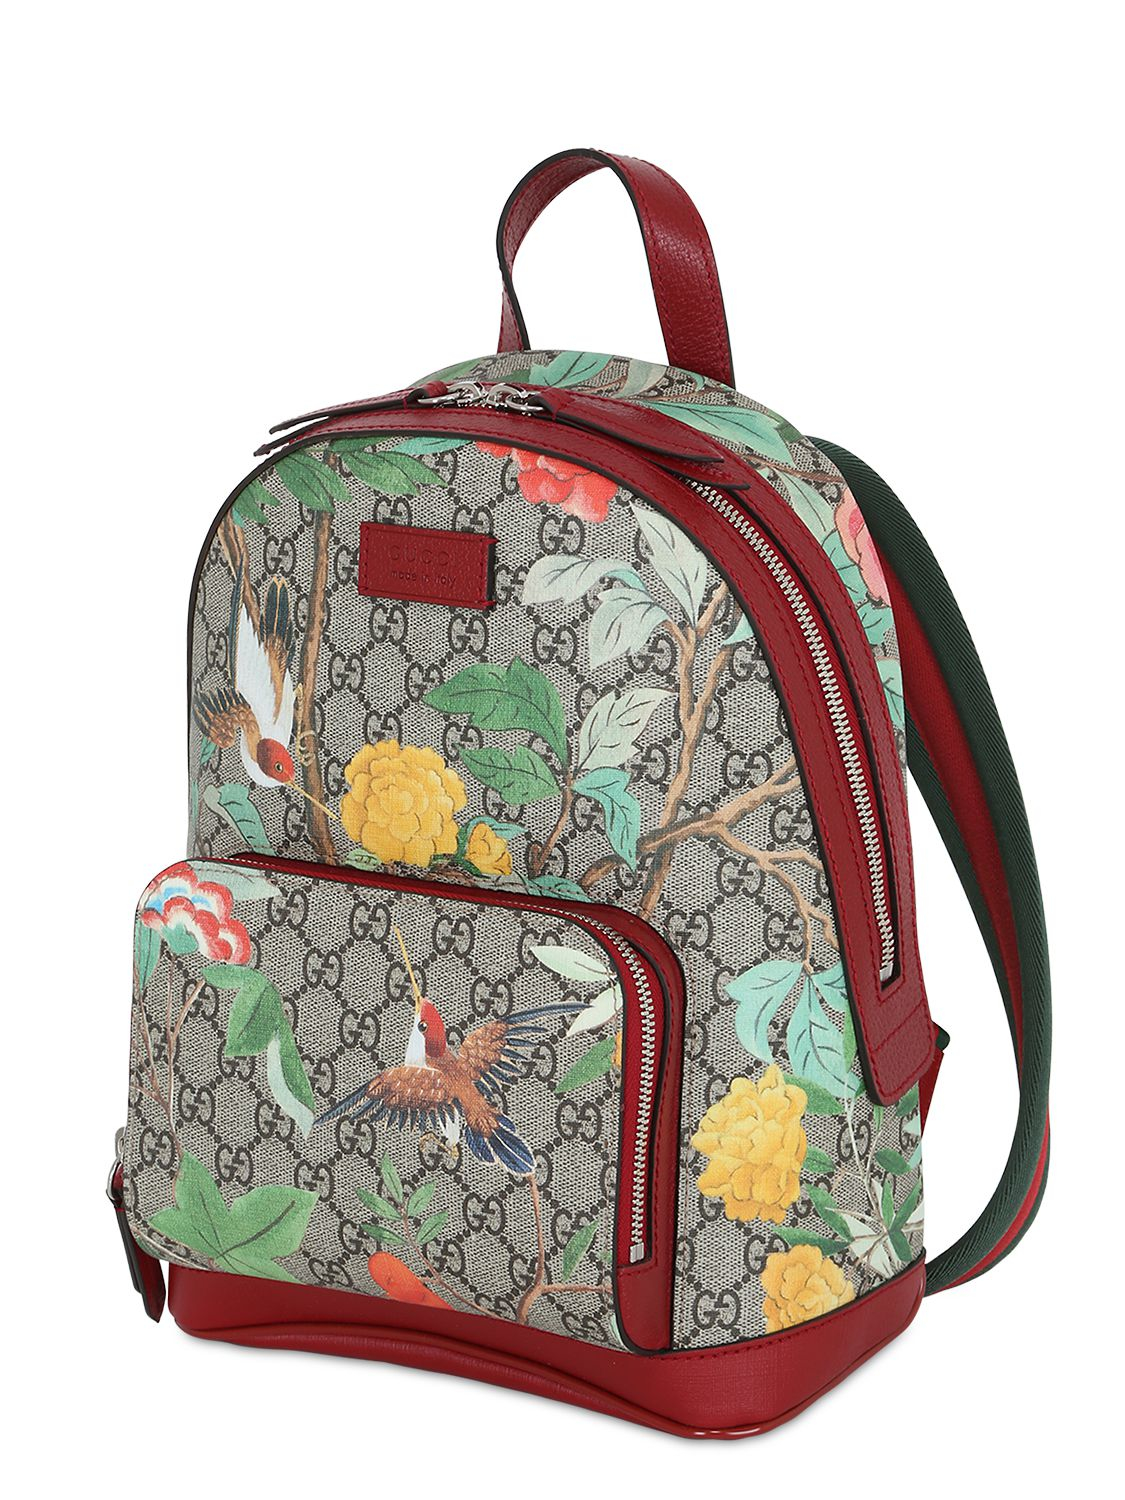 276d10c4178b Gucci Tian GG Supreme Leather Backpack for Men - Lyst